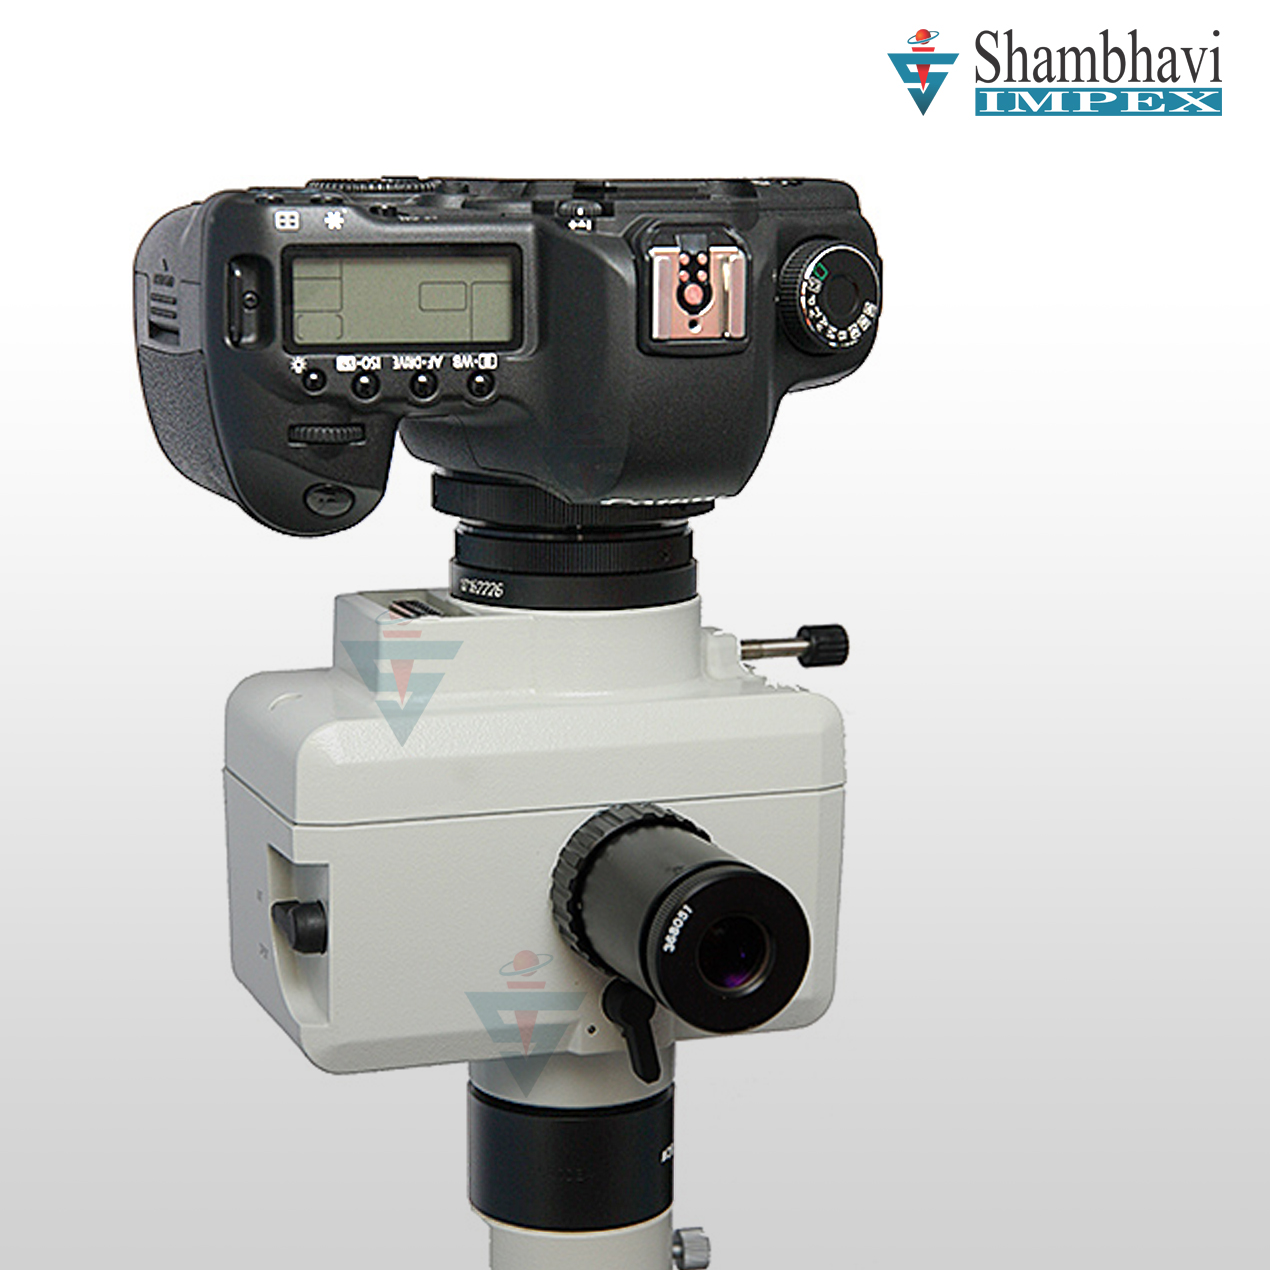 Photomicrographic Equipment